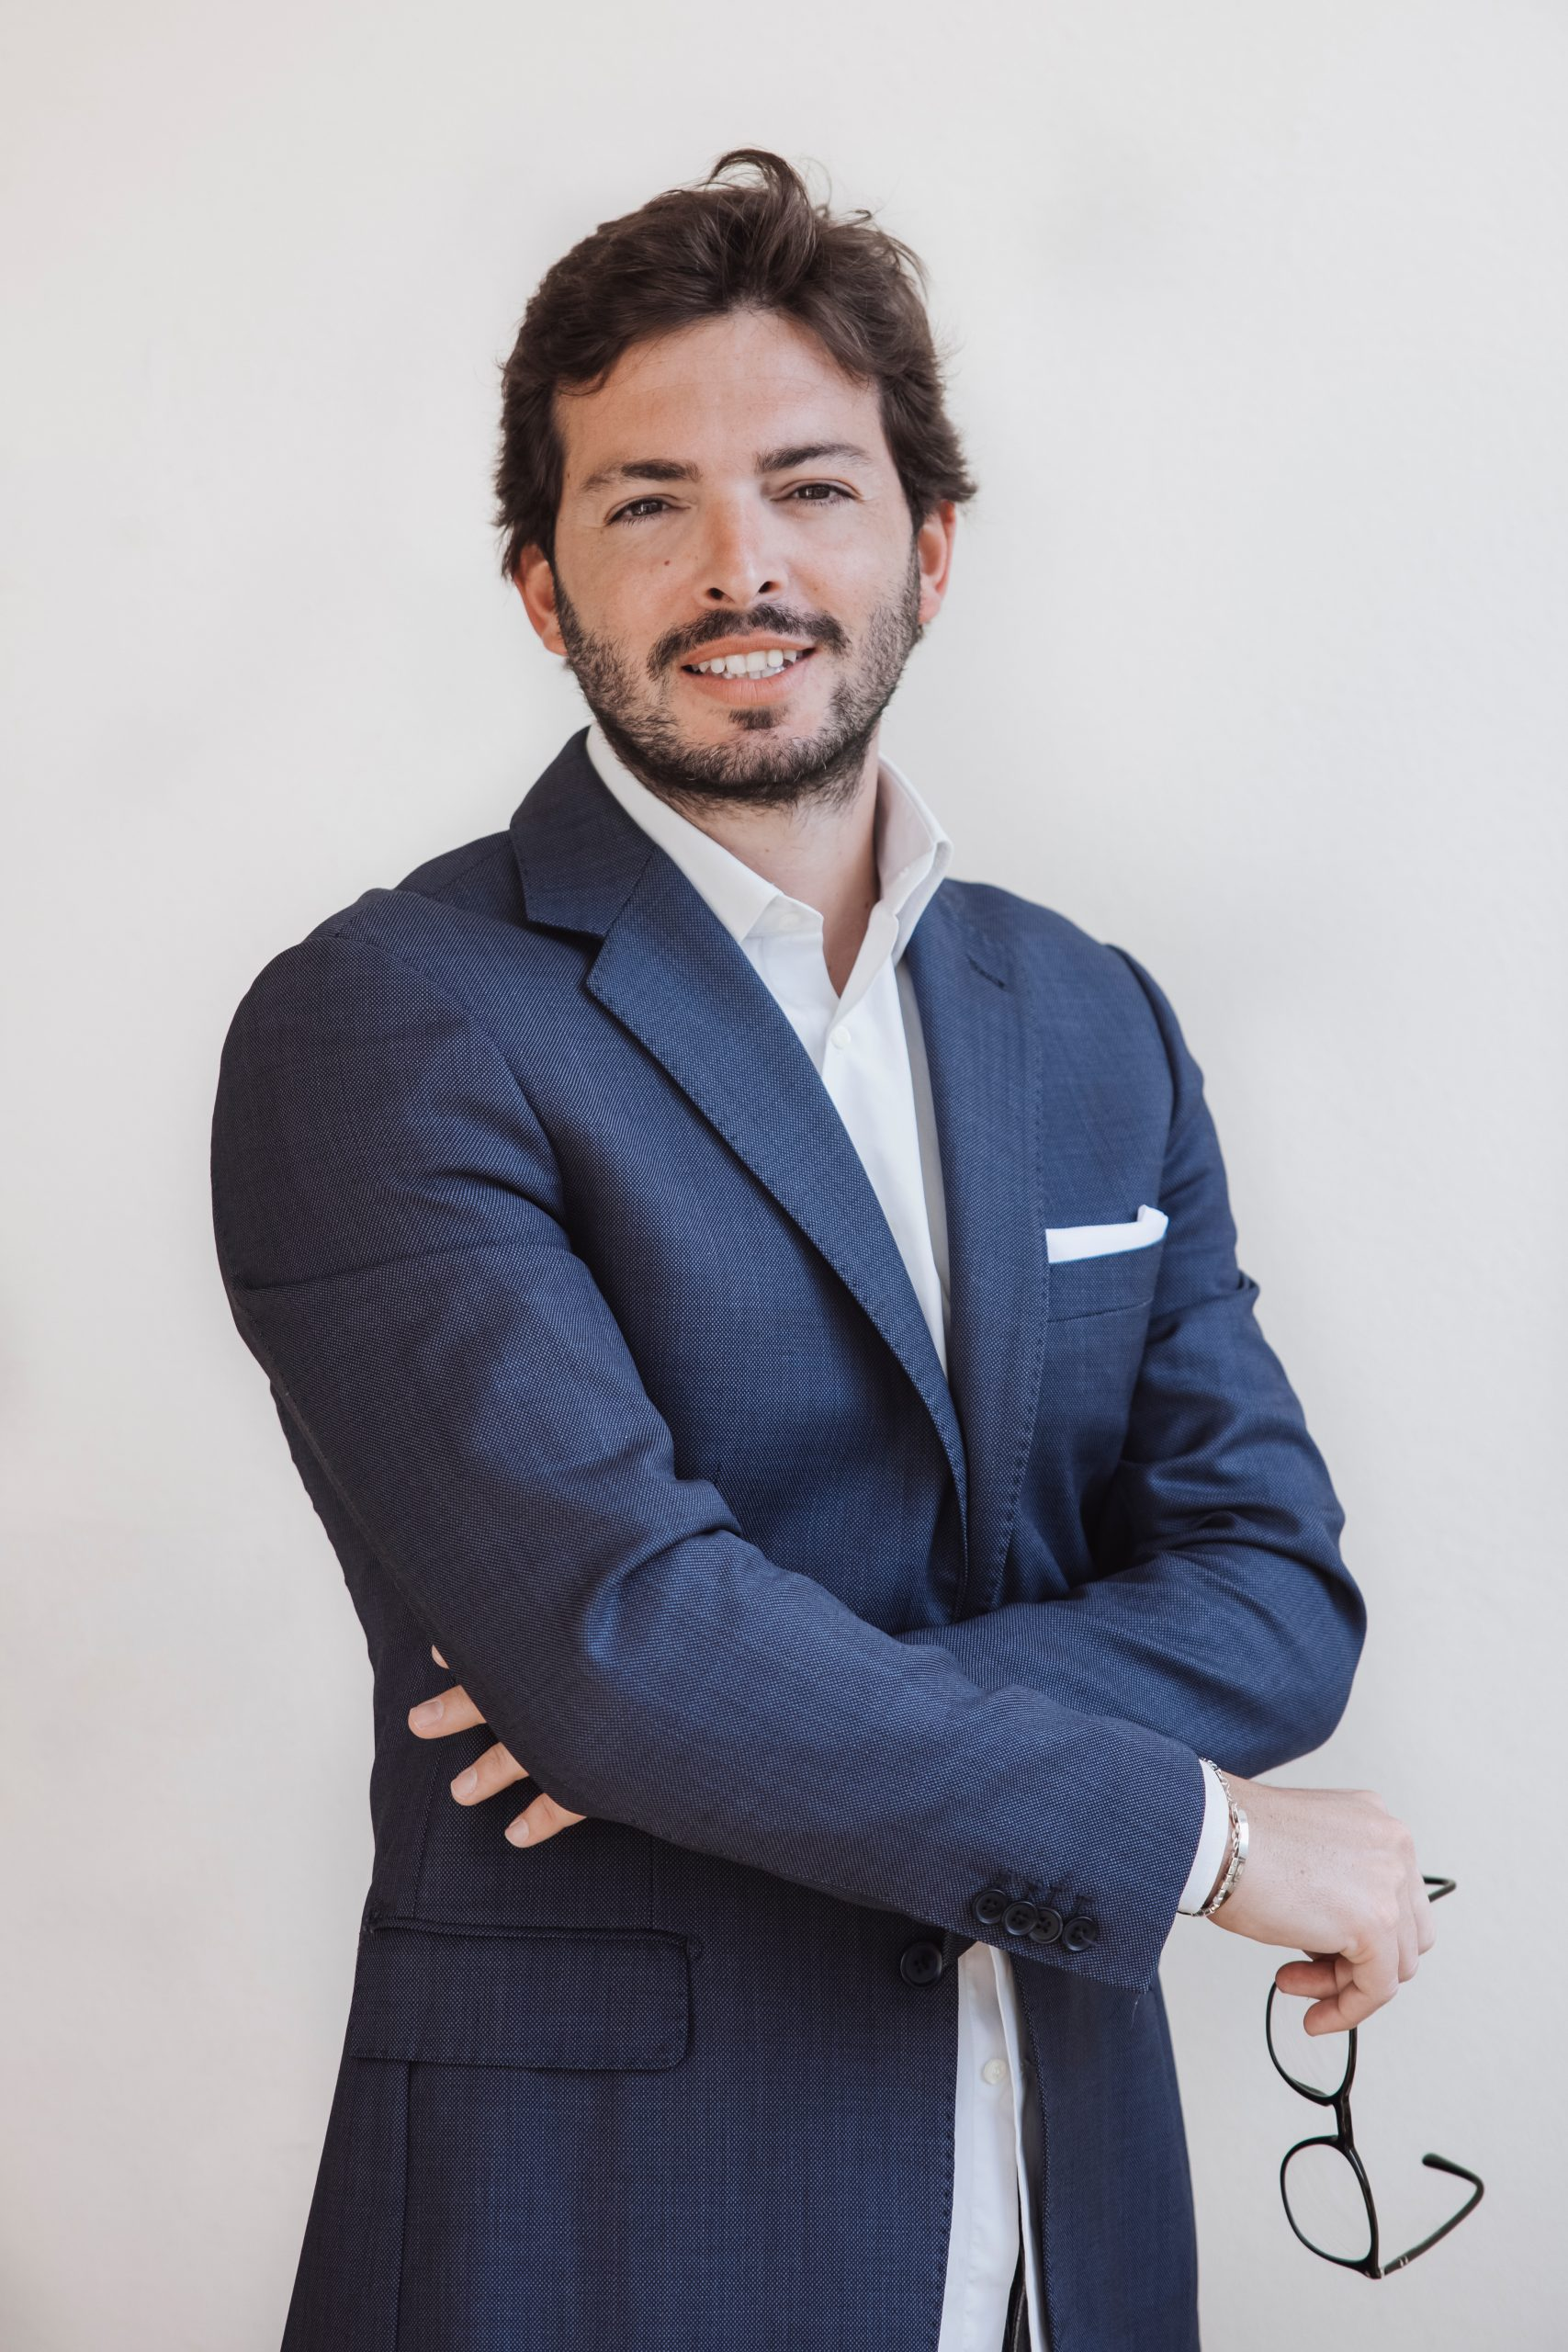 Giuseppe Morvillo, Founder & Communication Manager